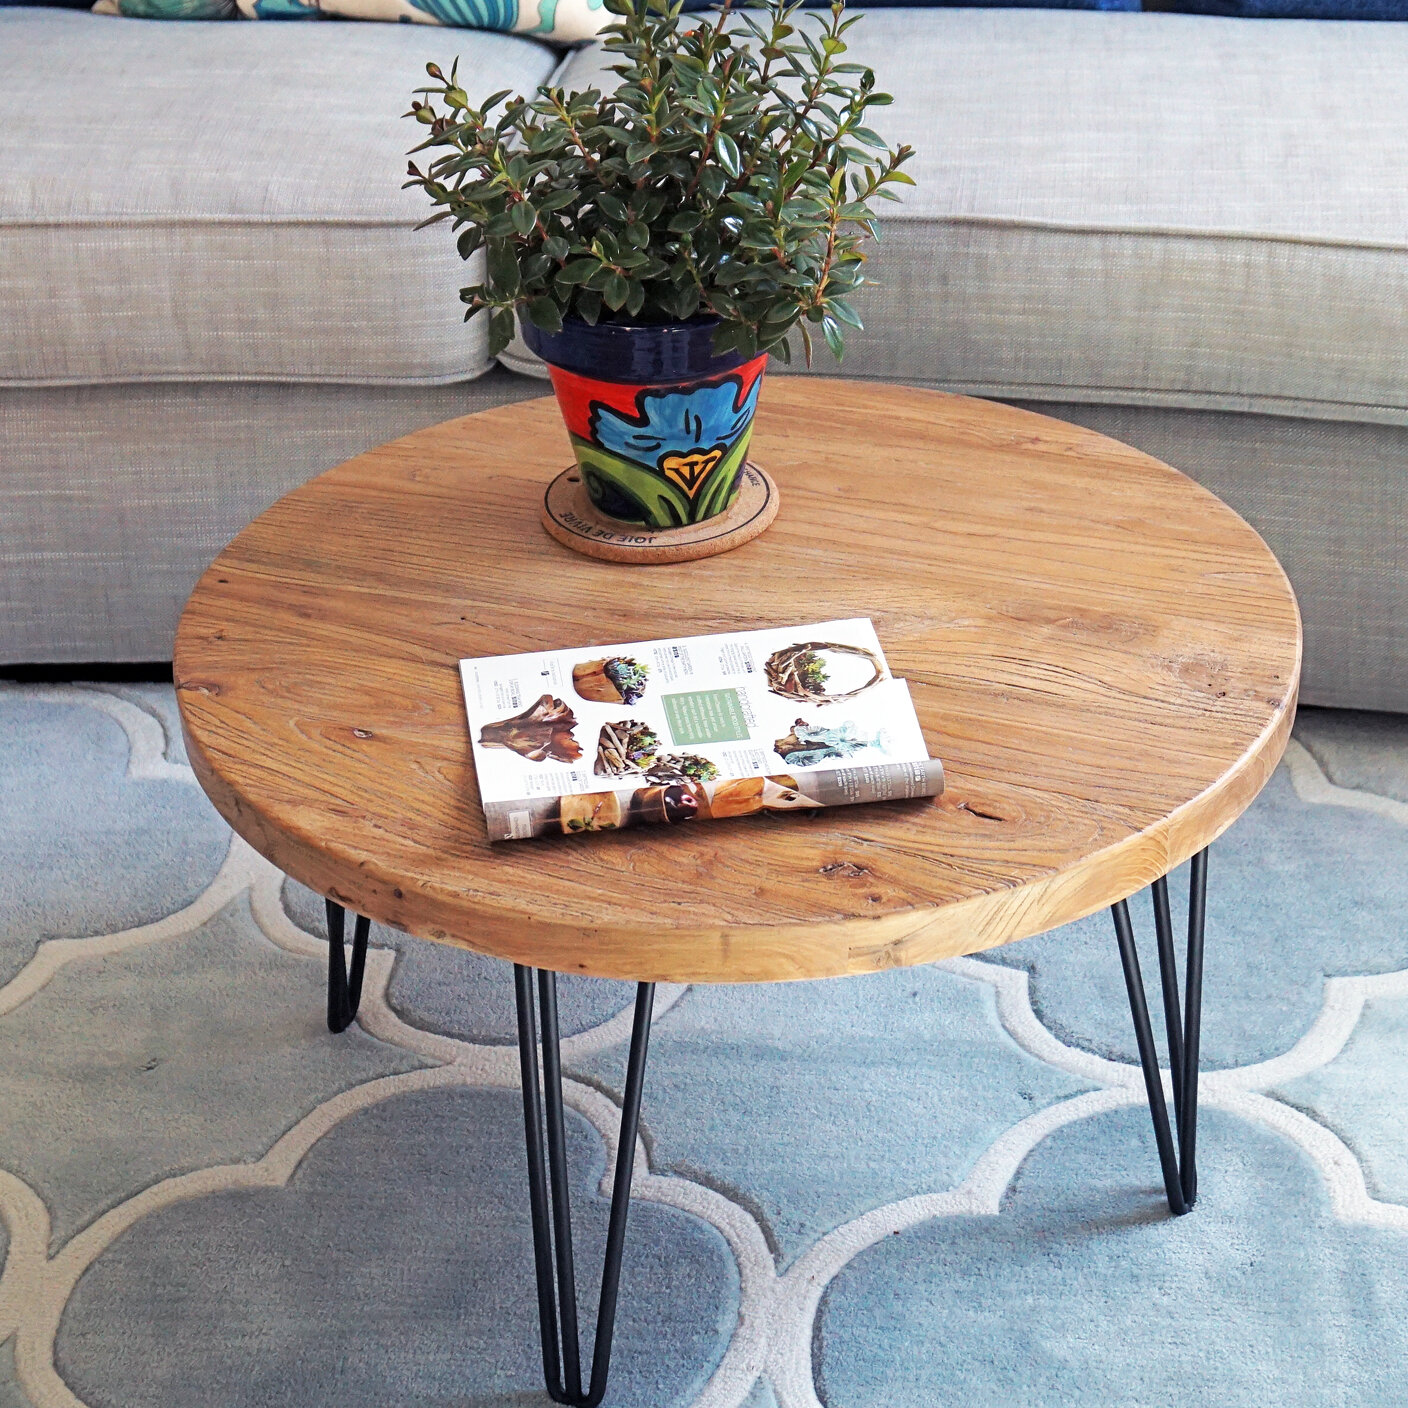 Foundry Select Cornelius Old Elm Rustic Round Coffee Table